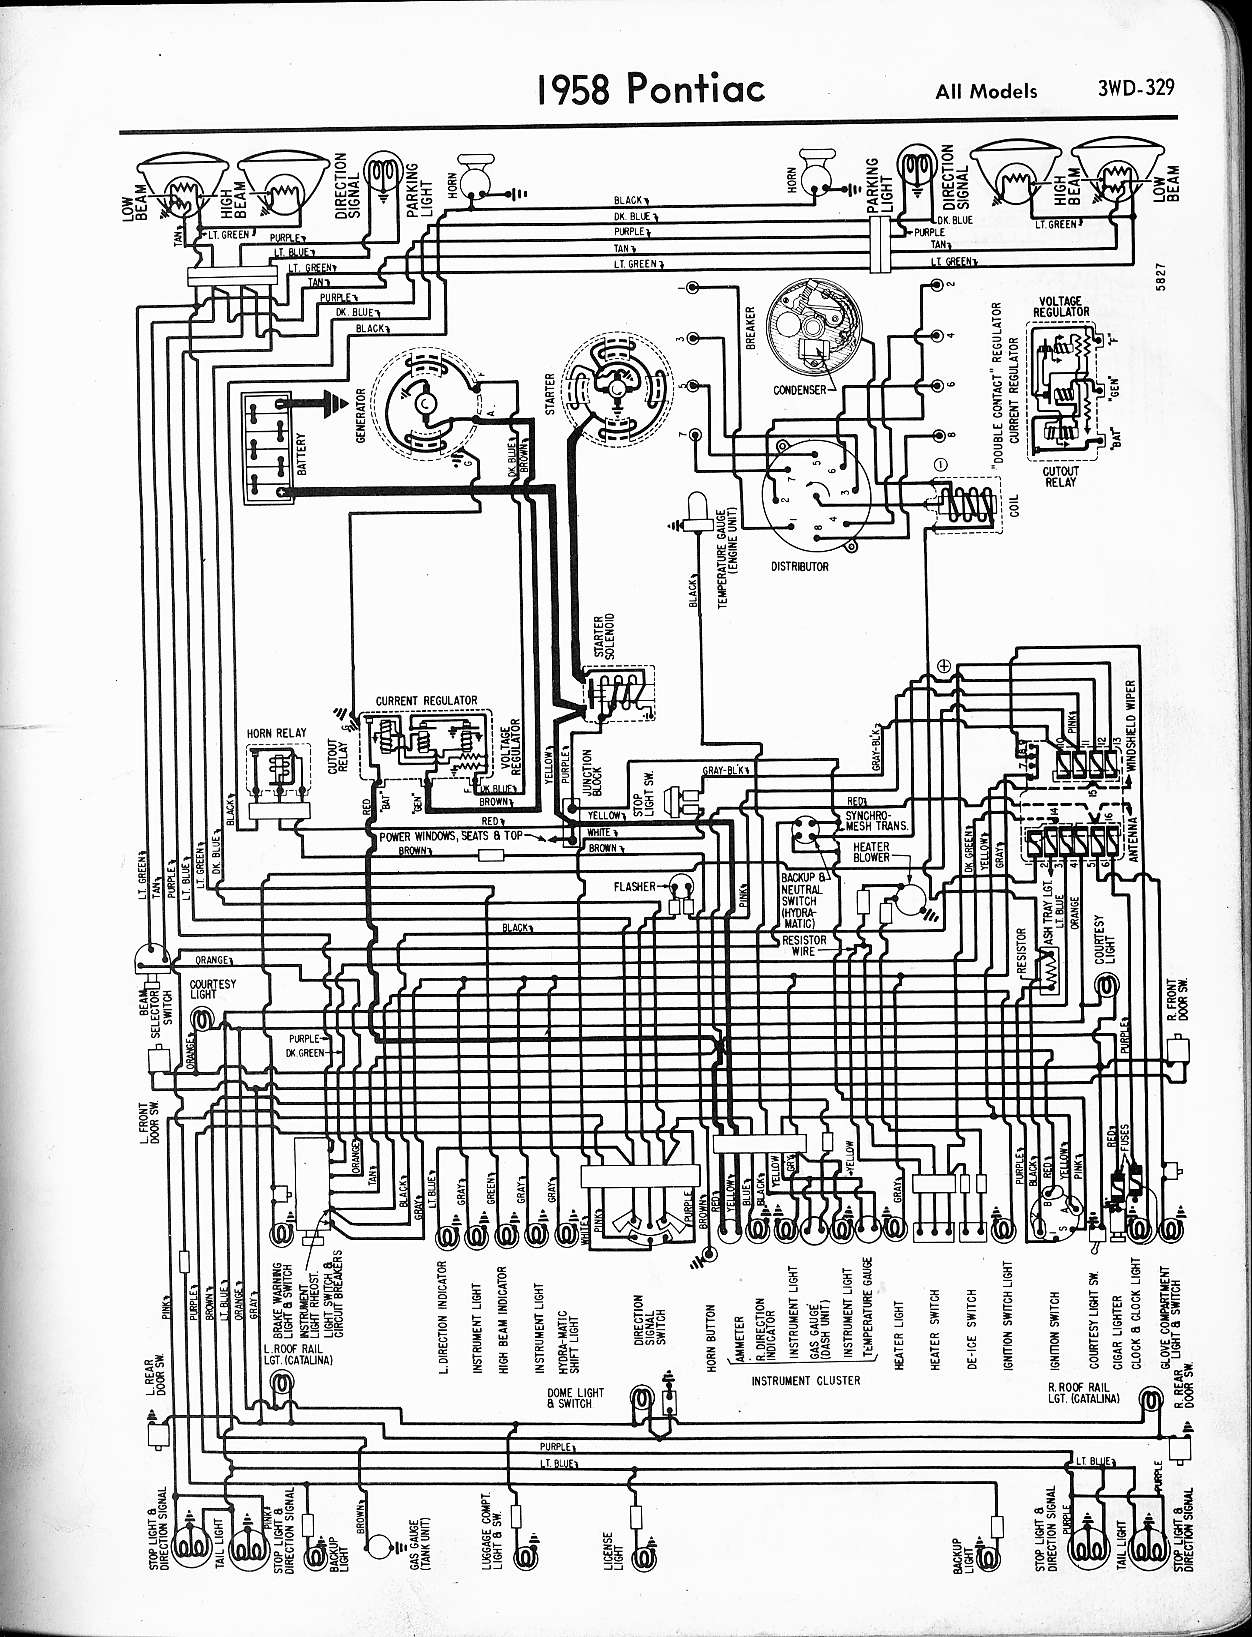 57 pontiac chieftain wiring horn diagram wiring diagram u2022 rh championapp co Pontiac Sunfire Starter Wiring Diagram 1970 Firebird Wiring Diagram